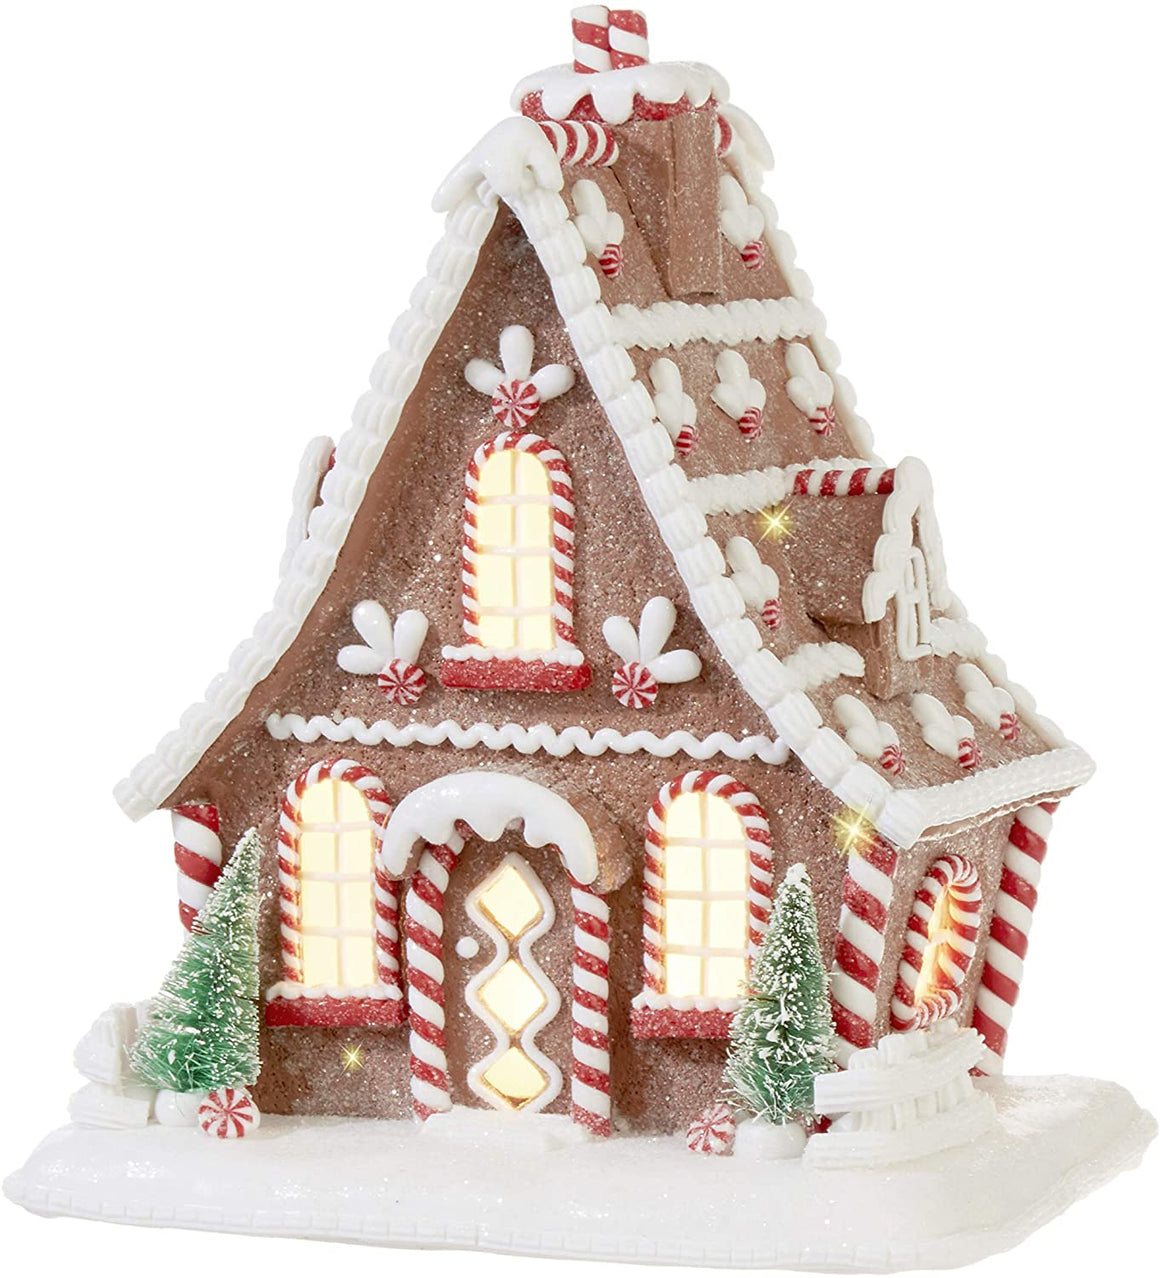 TenWaterloo Large Lighted Gingerbread Peppermint Candy House in Clay Dough Resin with Frosted Snow Look, Battery Operated, 10 inches High x 8.5 Inches Wide